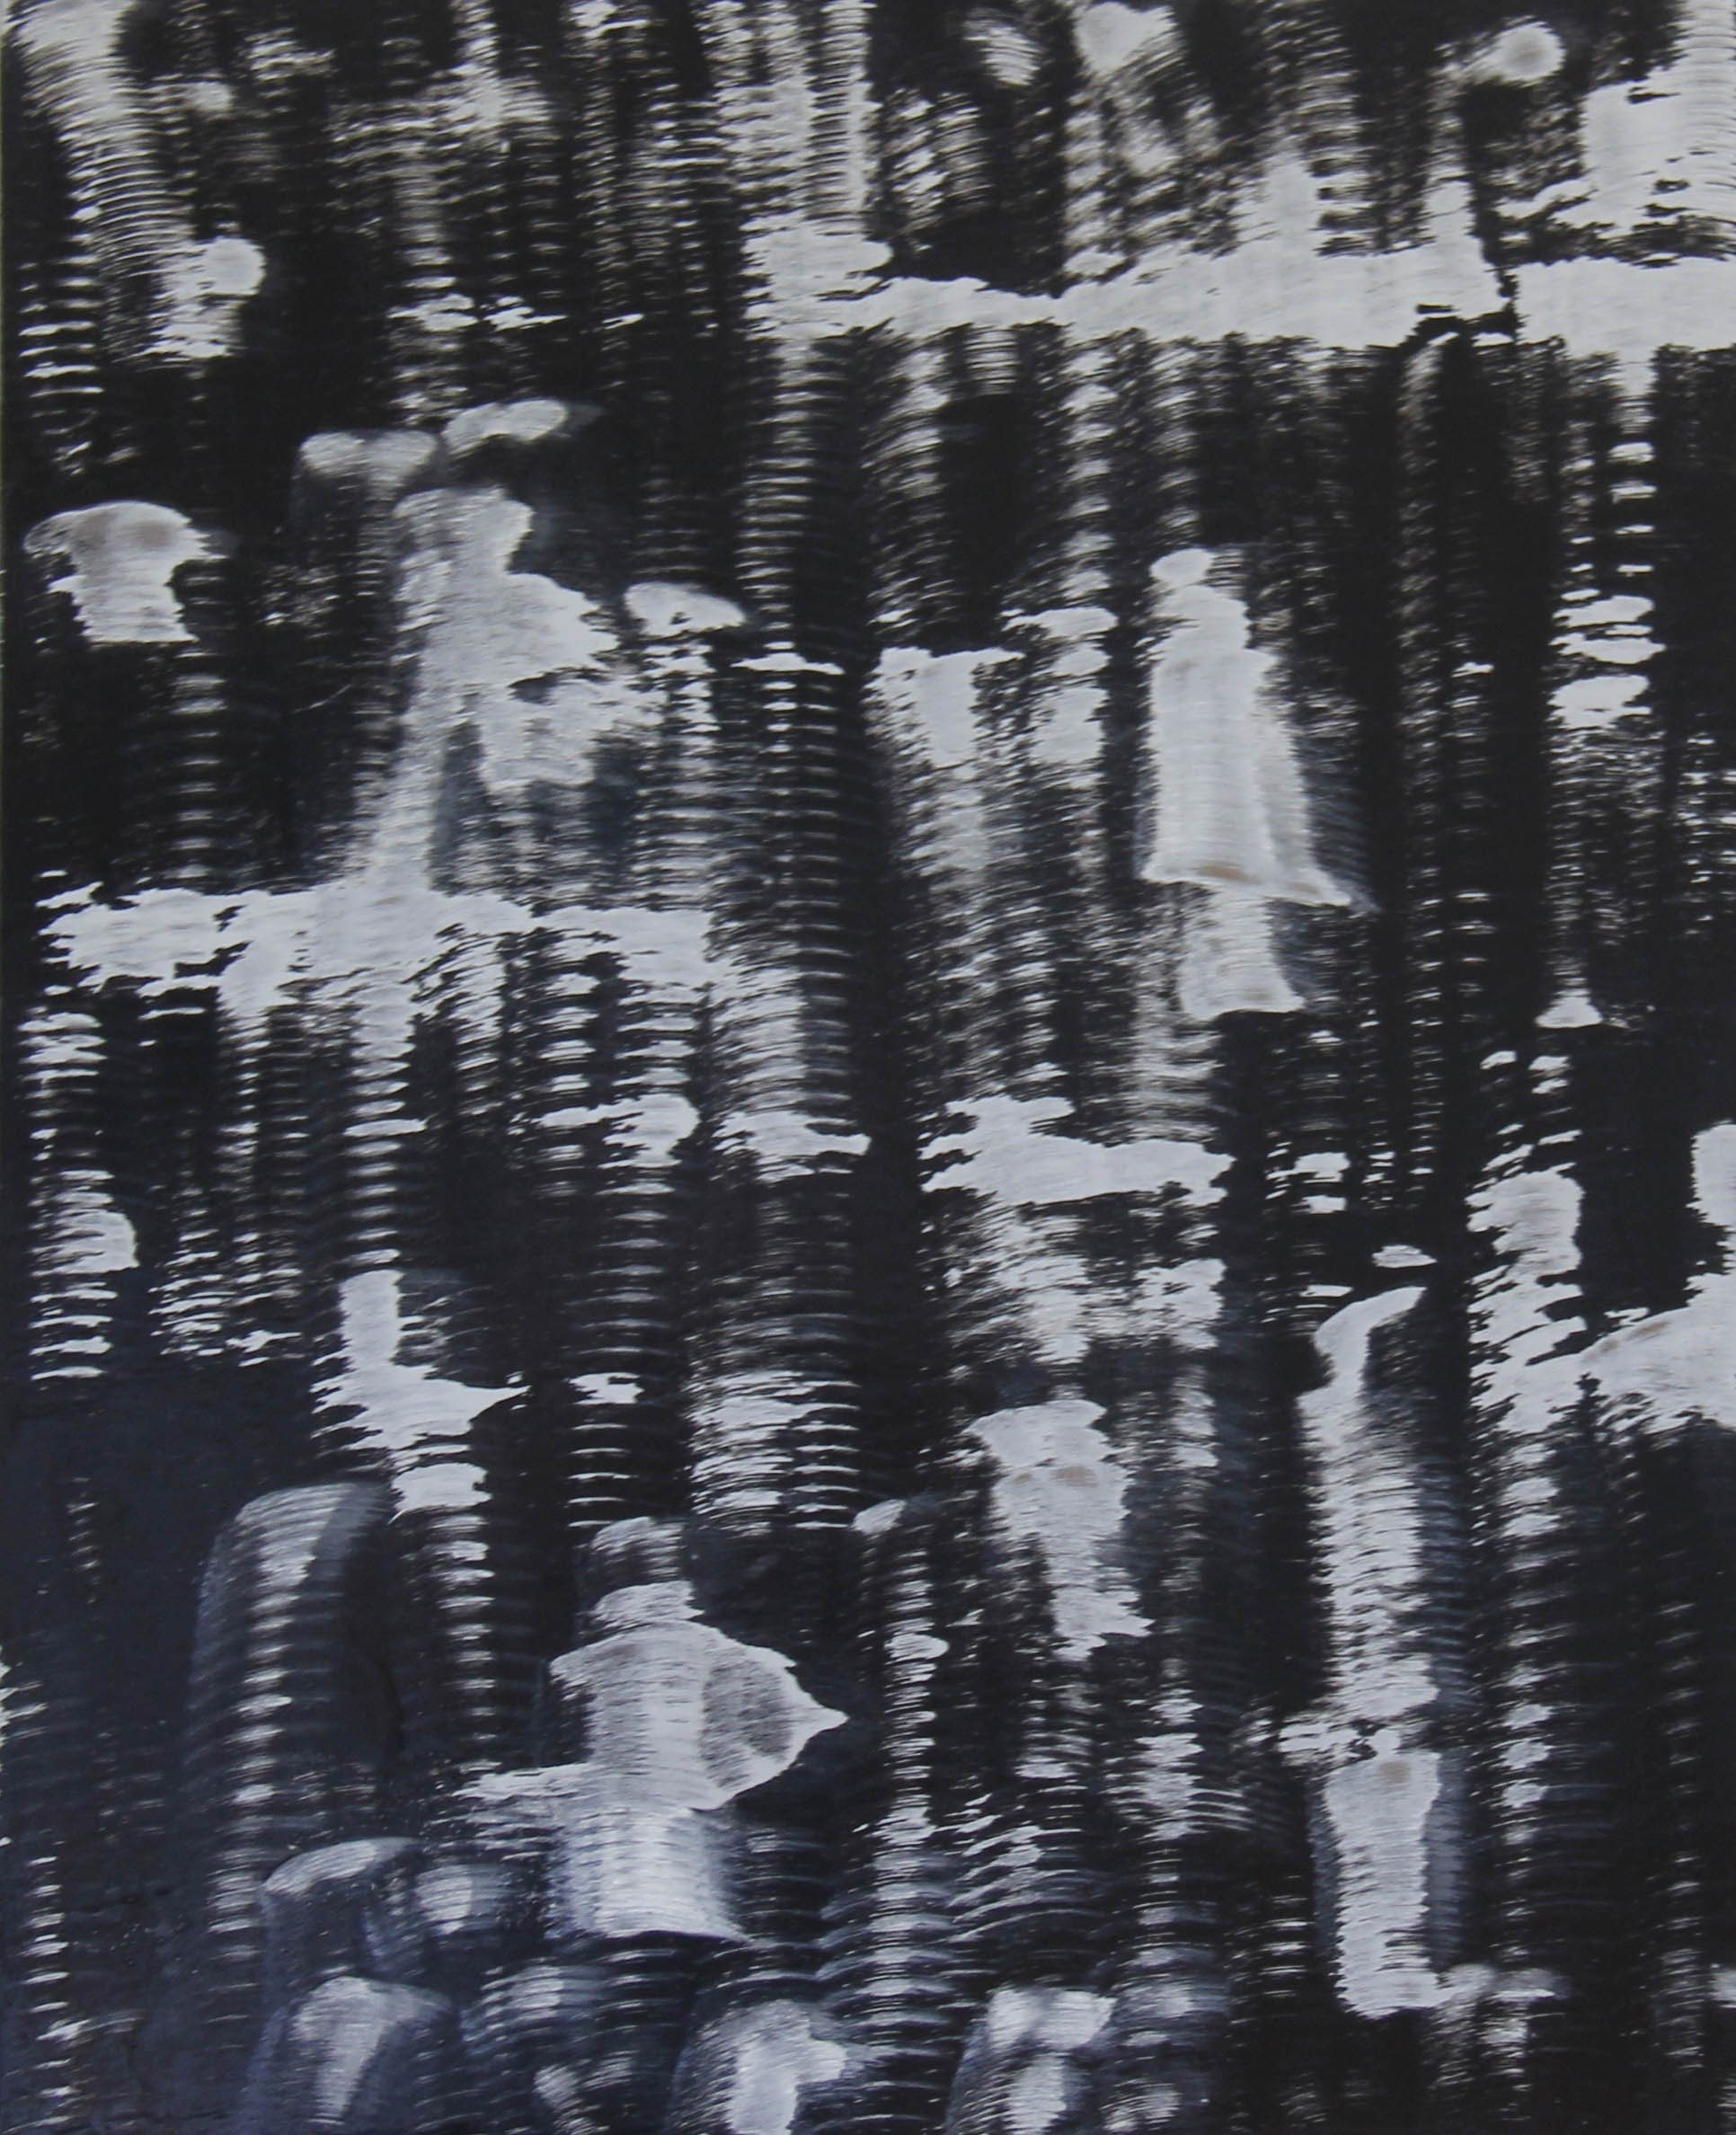 Sem título #5, original B&W Mixed Technique Painting by Anabela Rodrigues